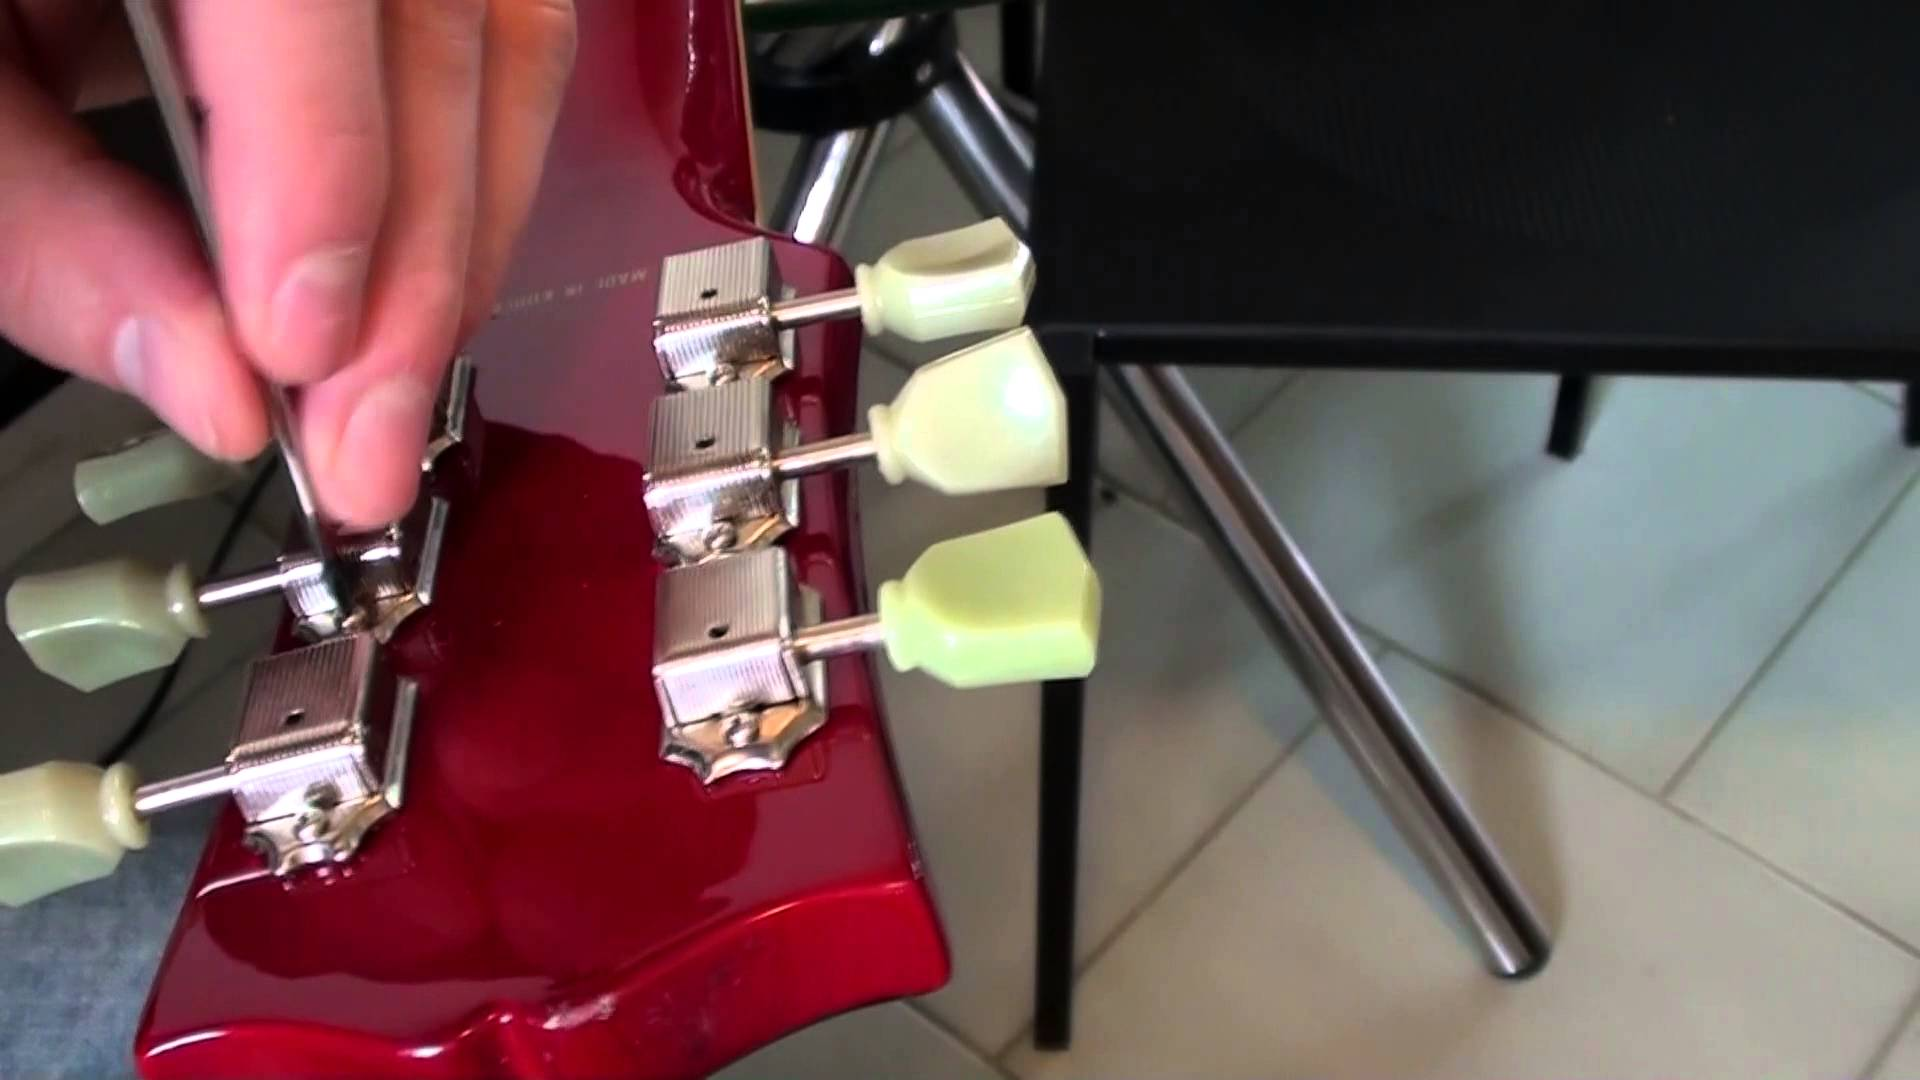 Changing guitar tuning pegs